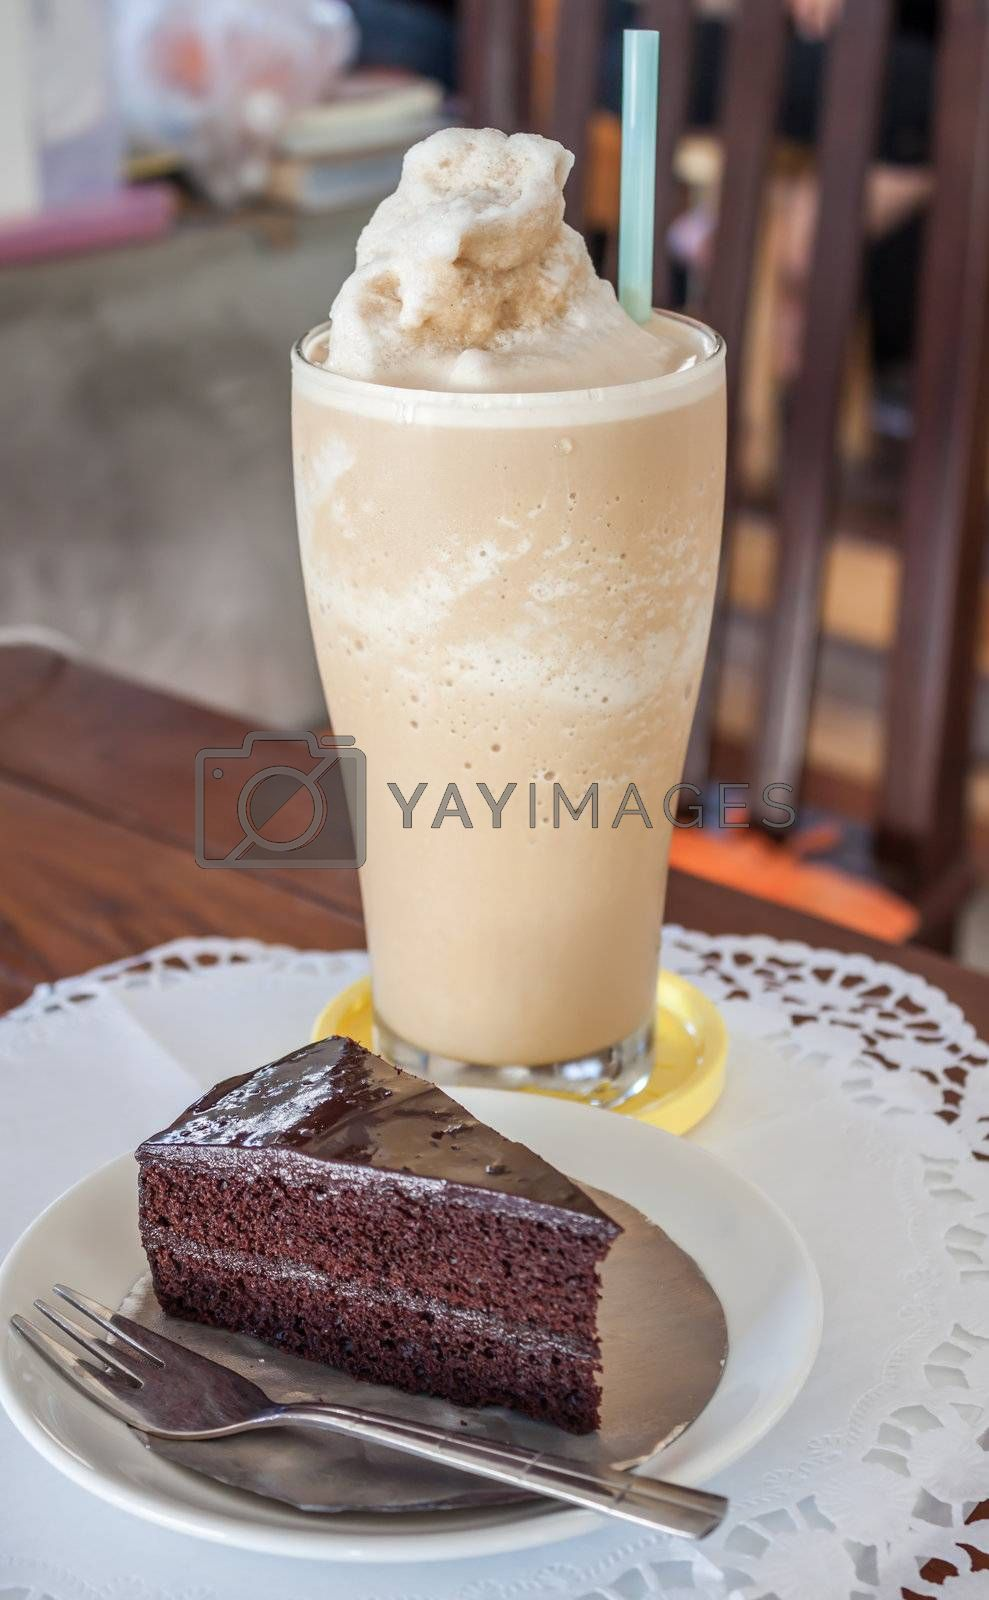 A set of coffee frappe and chocolate cake on the table